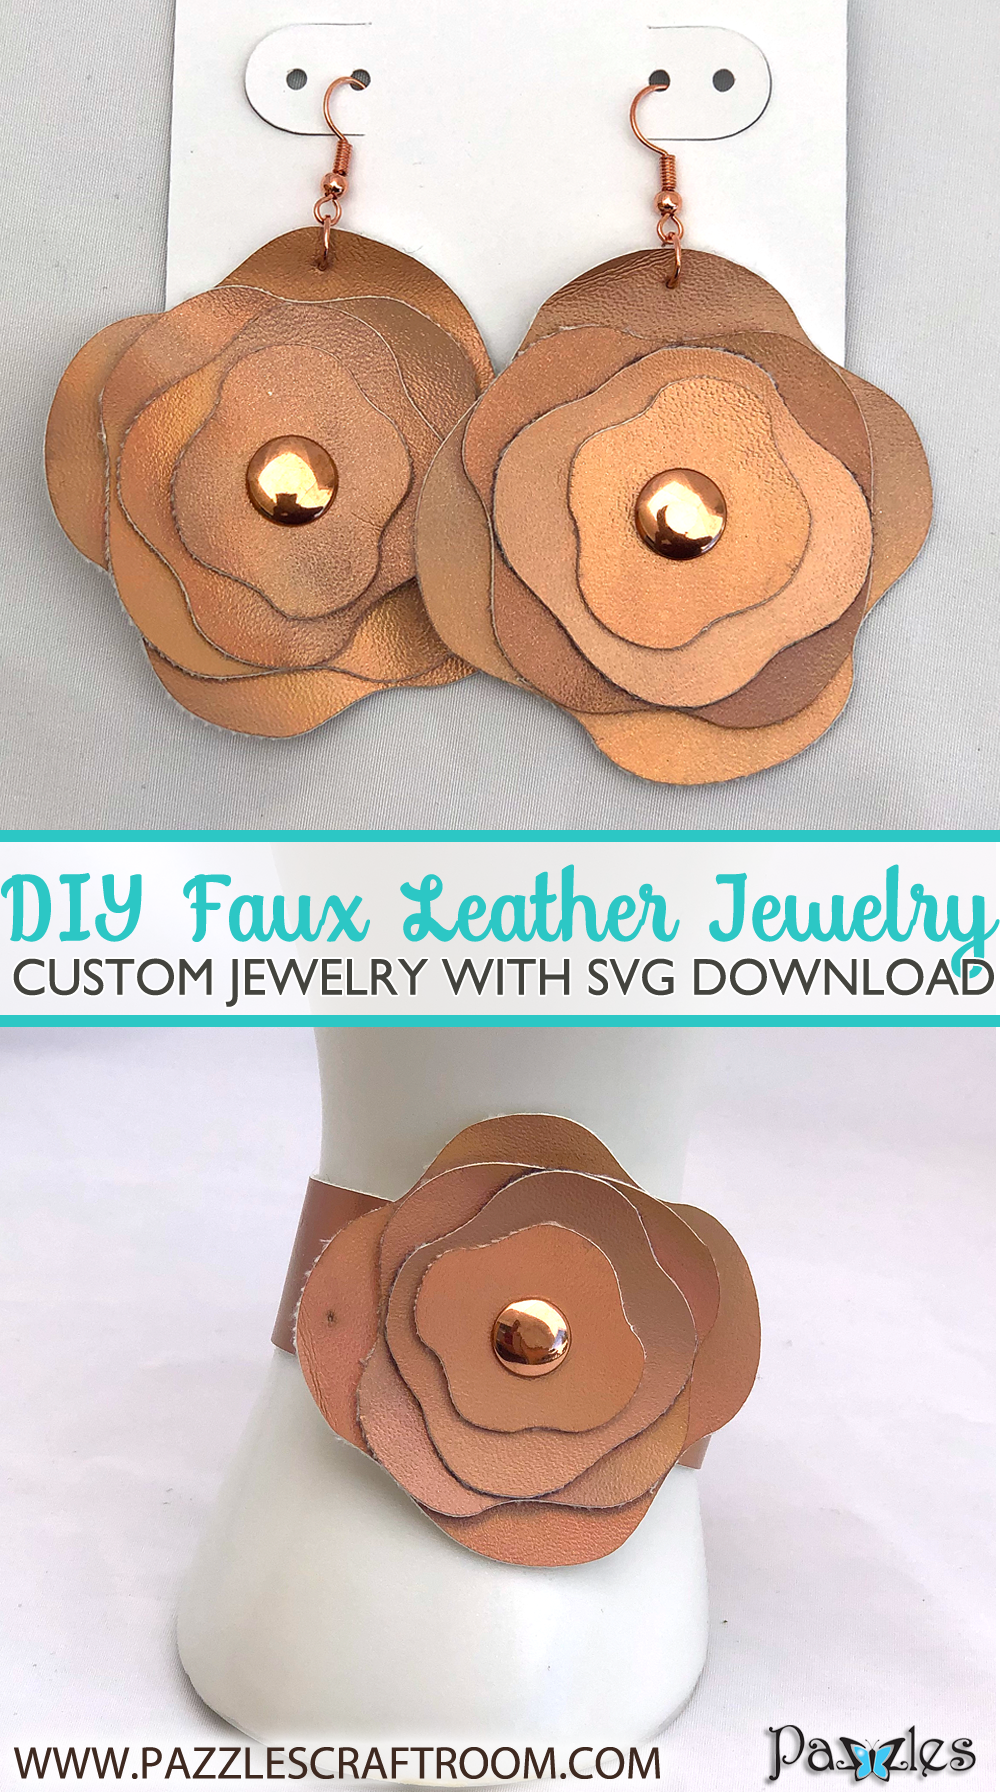 Pazzles DIY Faux Leather Jewelry with SVG instant download. Compatible with all major electronic cutters including Pazzles Inspiration, Cricut, and Silhouette Cameo.